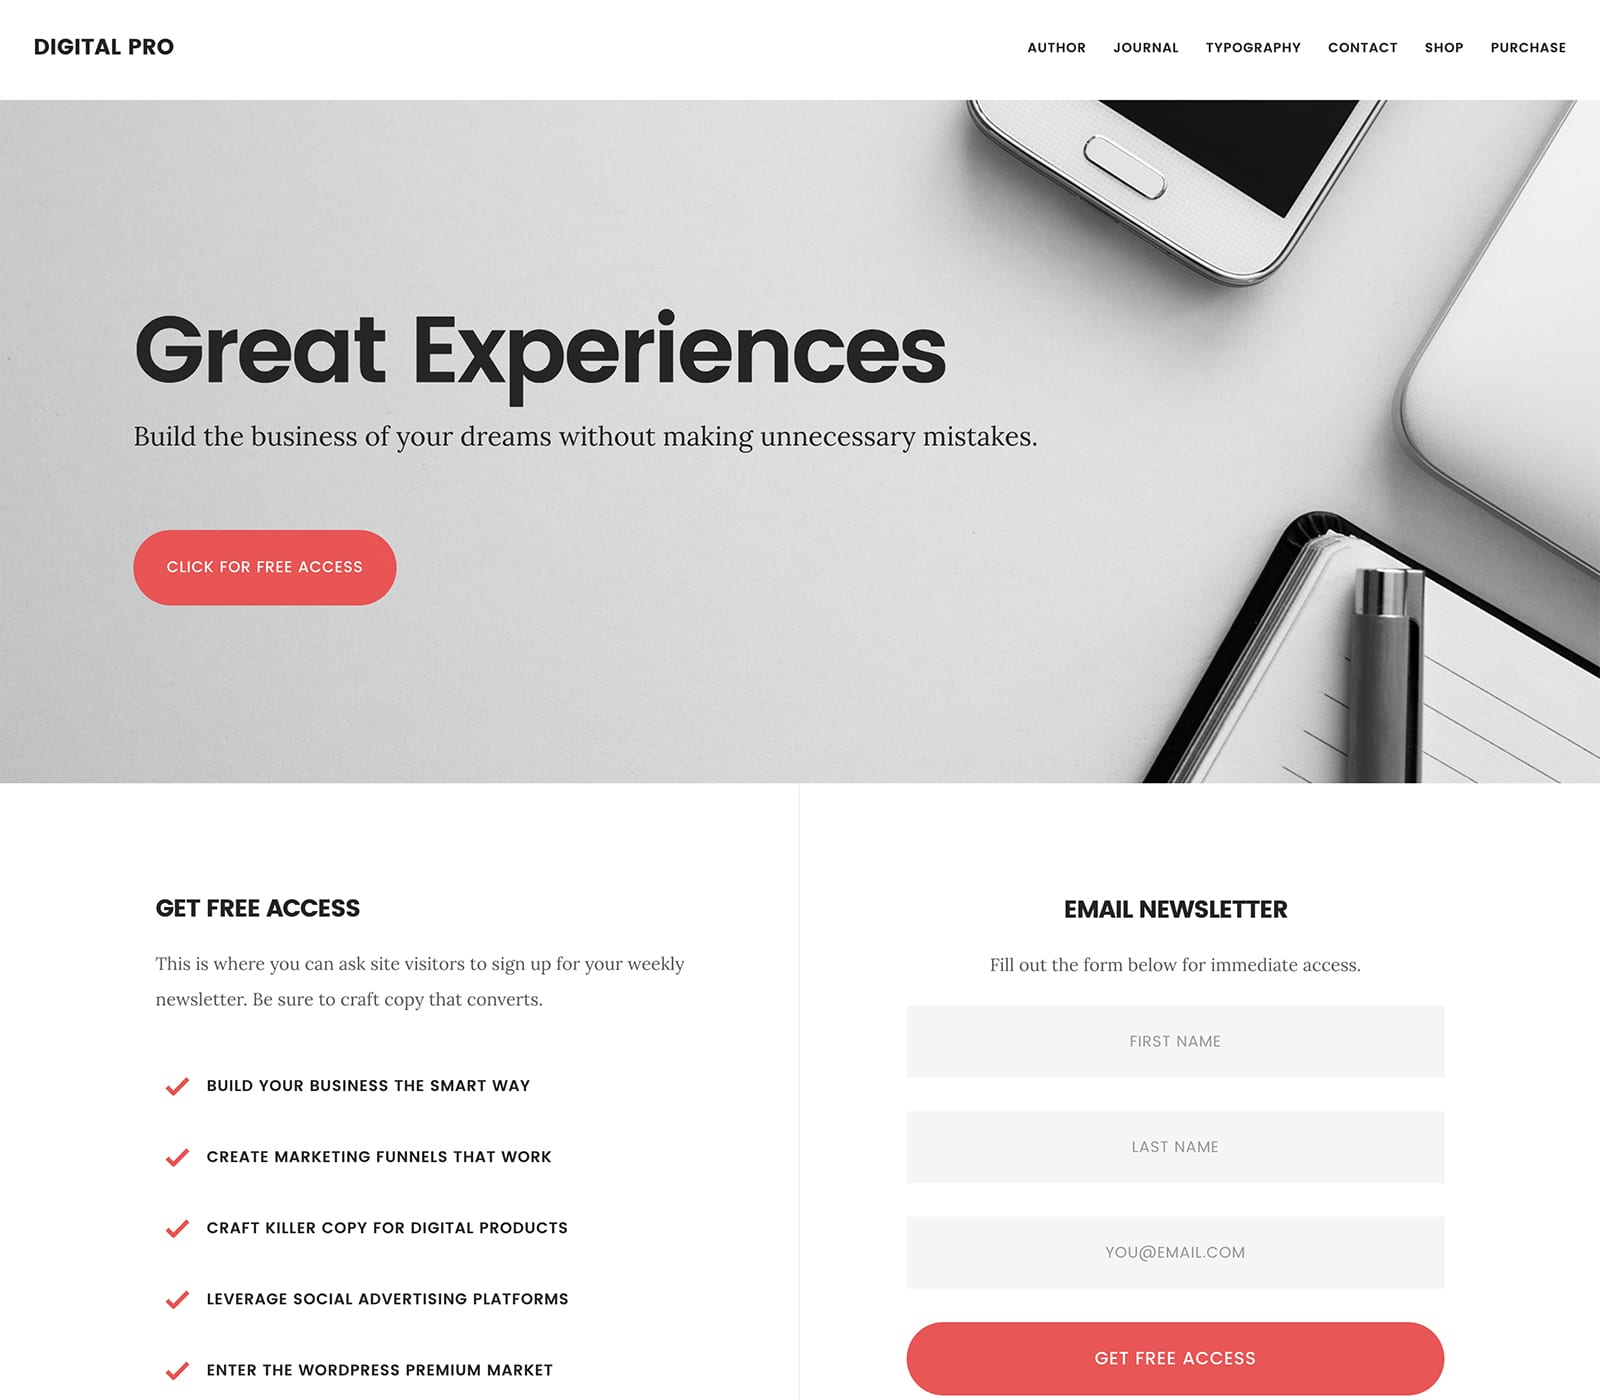 Digital Pro is a Studiopress child theme of the genesis framework and is tech inspired.